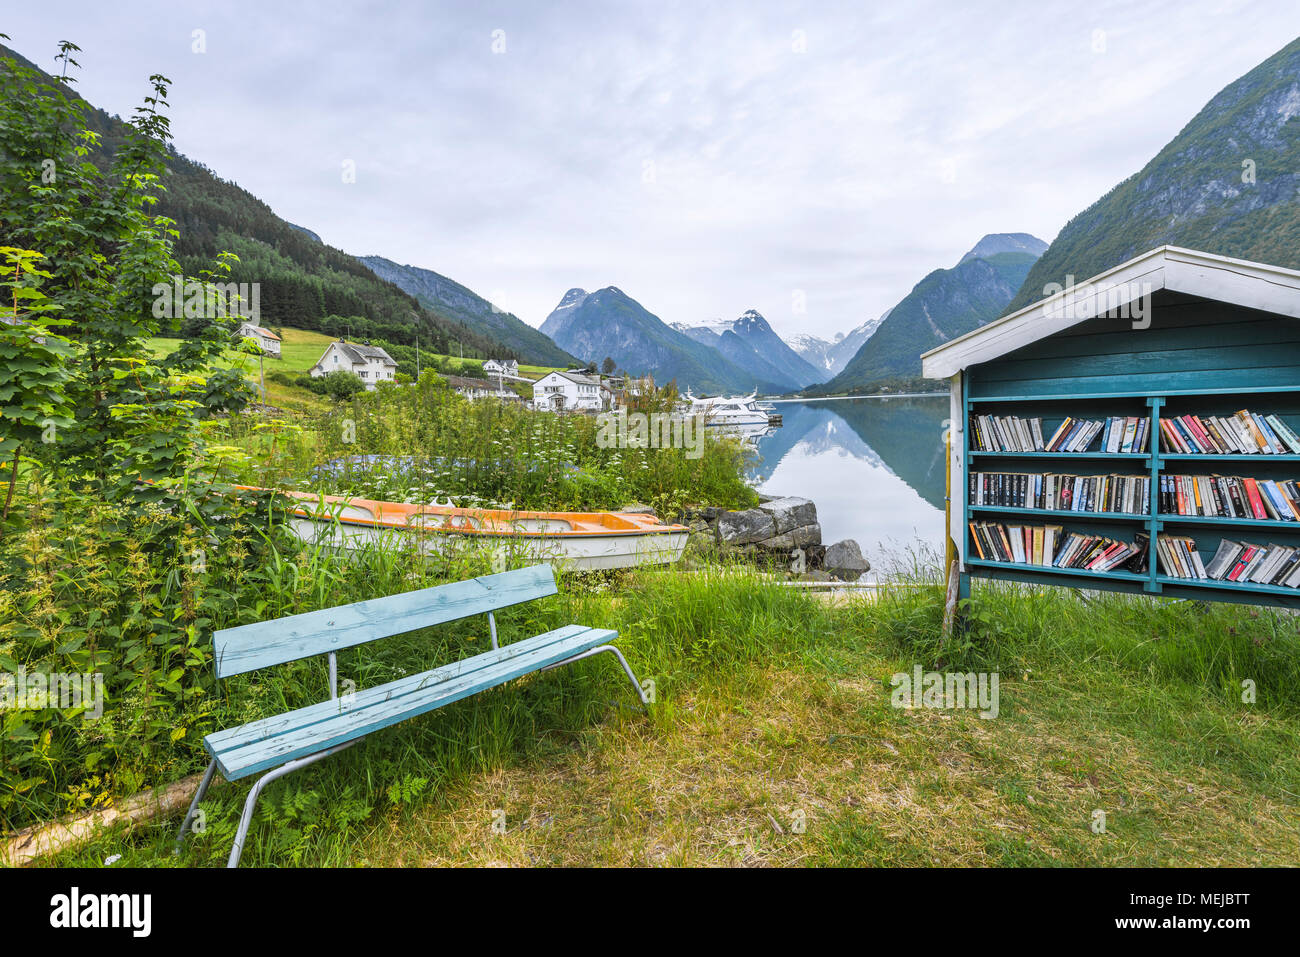 Outdoor Library And Bench At The Fjord Fjaerlandsfjorden Norway Public Bookshelf Boat Shore With Scenic Surroundings